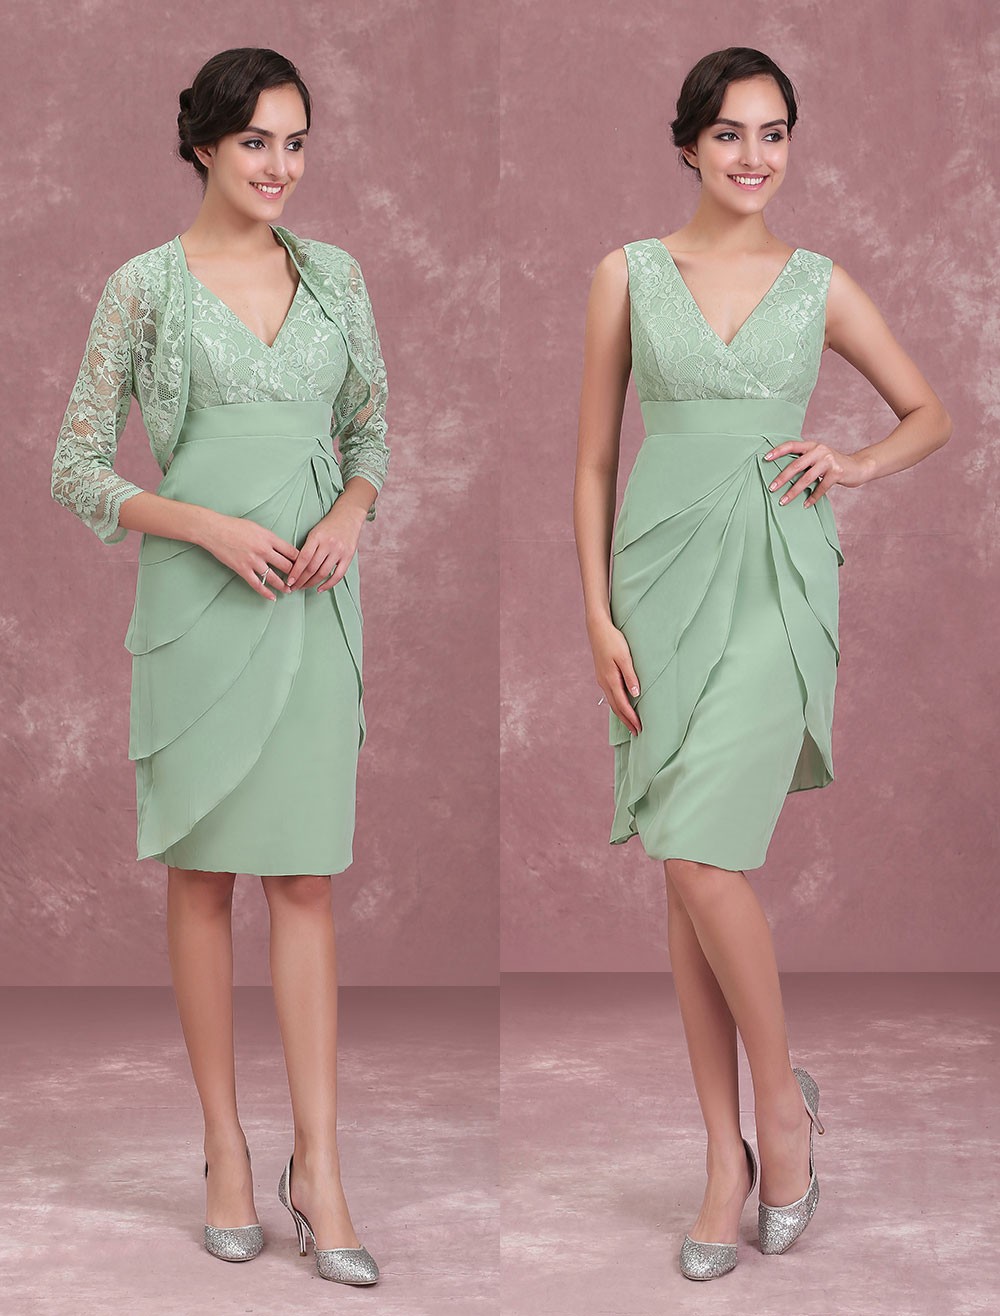 Buy Mother Of The Bride Dresses Two Piece Lace Chiffon Tiered Sage Green Short Sheath Wedding Guest Dress With Jacket for $136.39 in Milanoo store